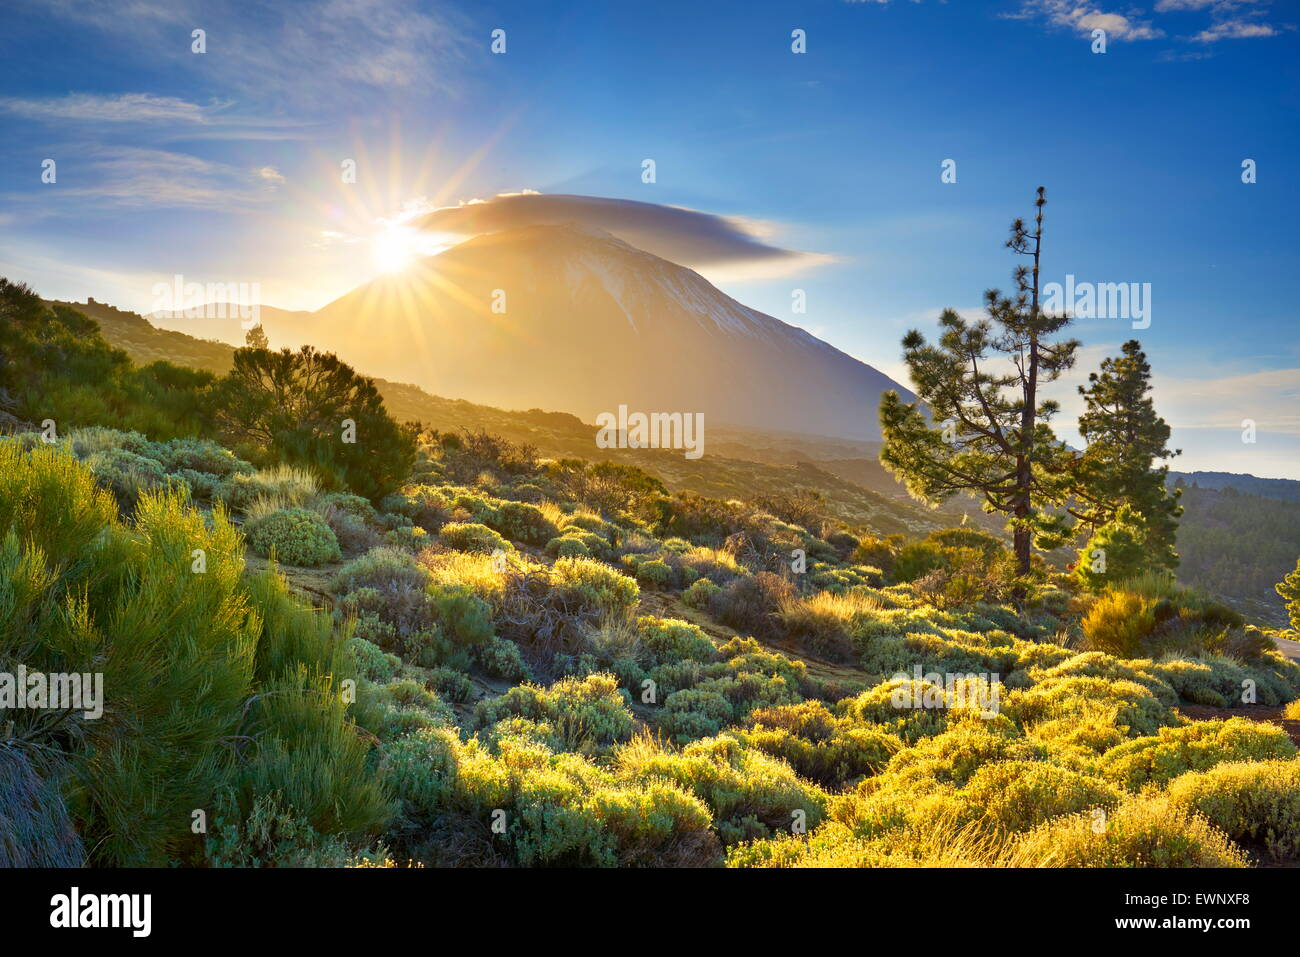 Teide National Park at sunset, Tenerife, Canary Islands, Spain - Stock Image